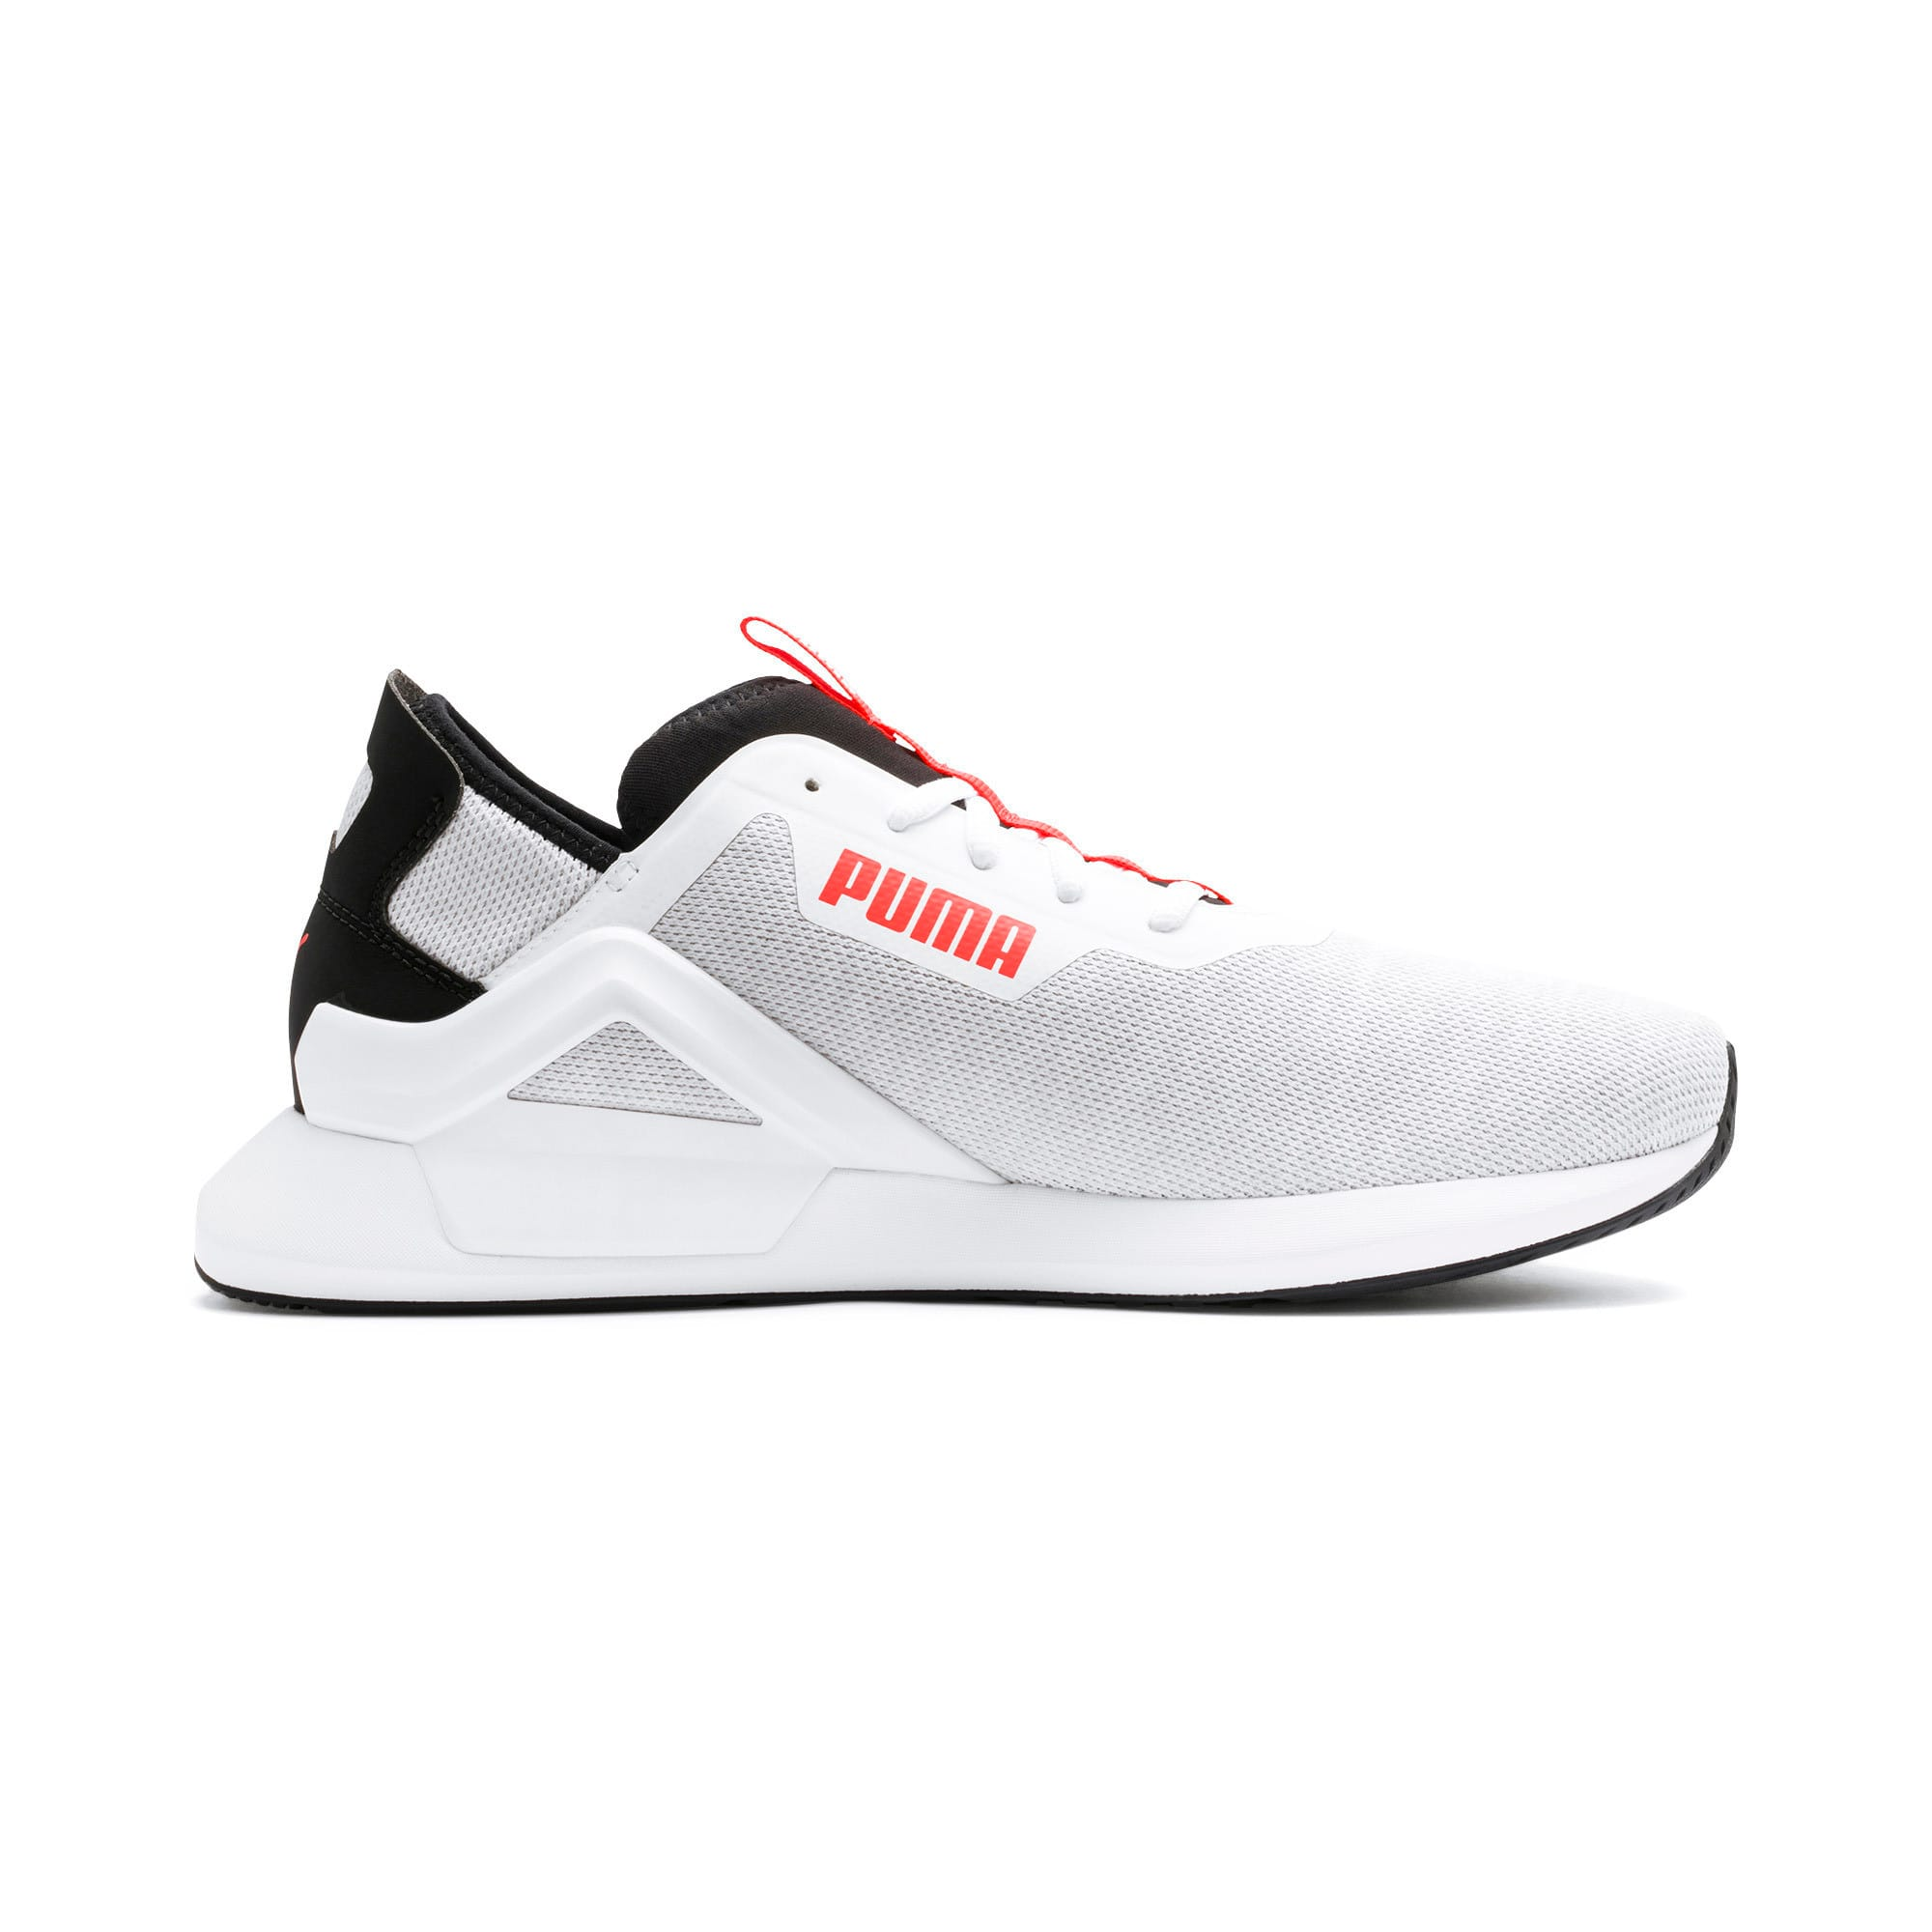 Thumbnail 6 of Rogue X Knit Men's Trainers, White-Black-Nrgy Red, medium